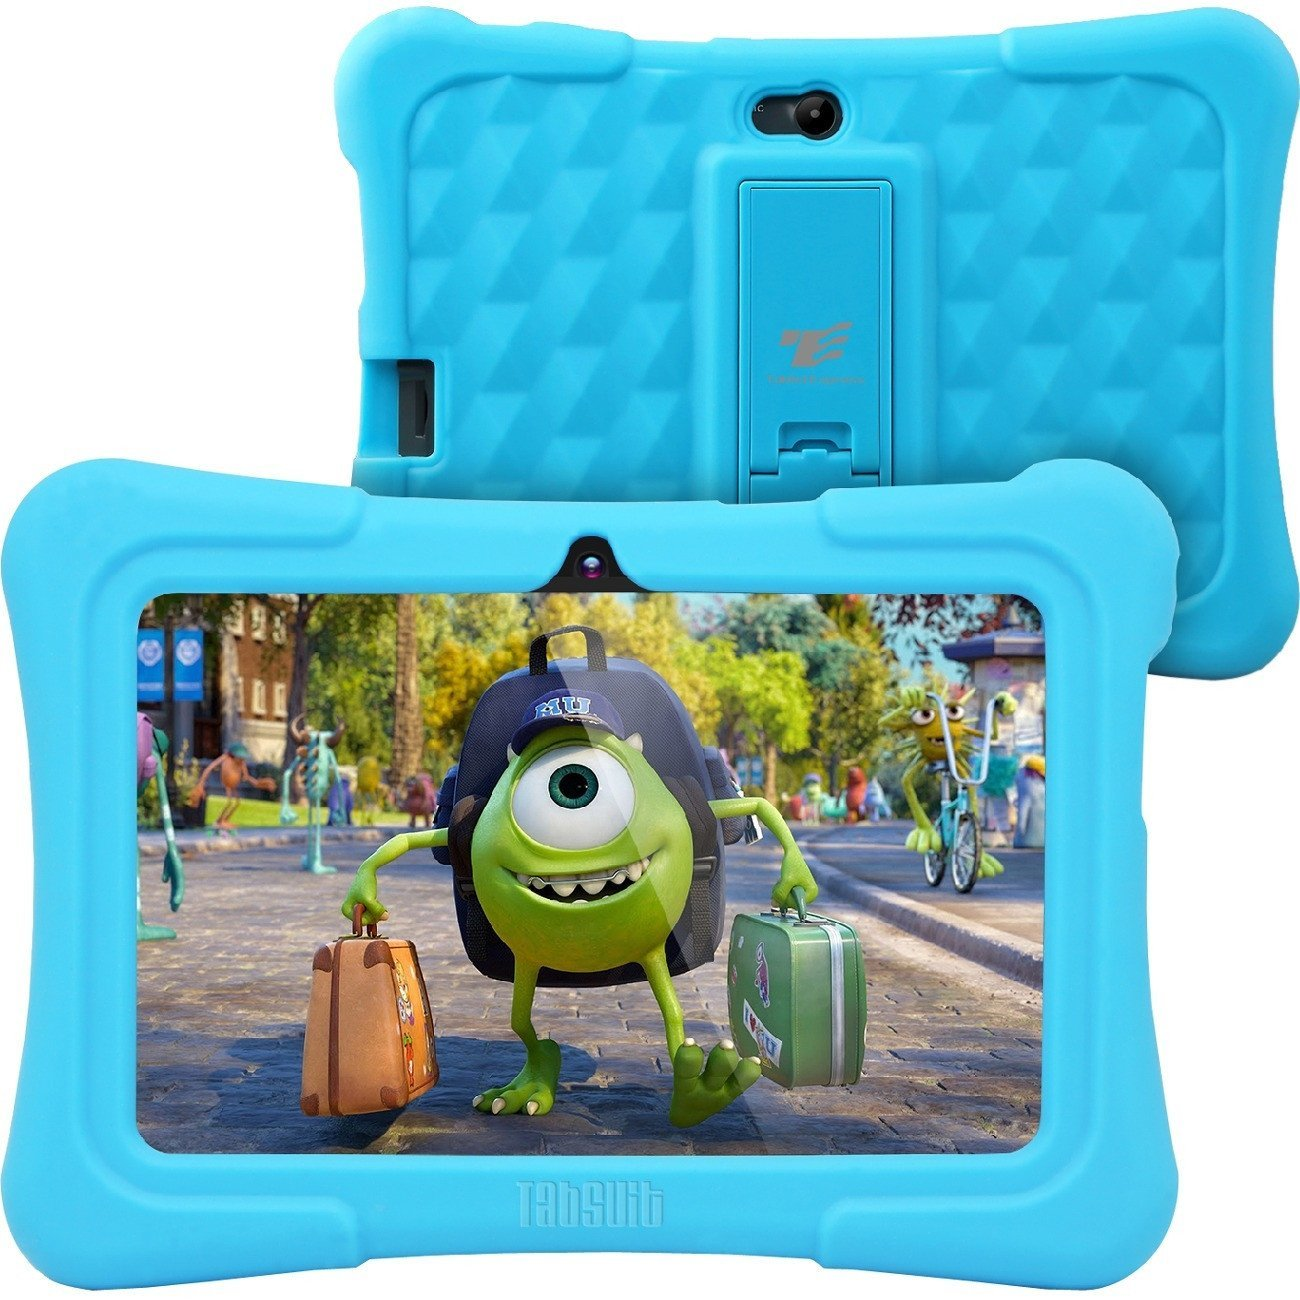 Dragon Touch Y88X Plus Kids 7 Tablet Disney Edition, Kidoz Pre-Installed, Android 5.1, Blue